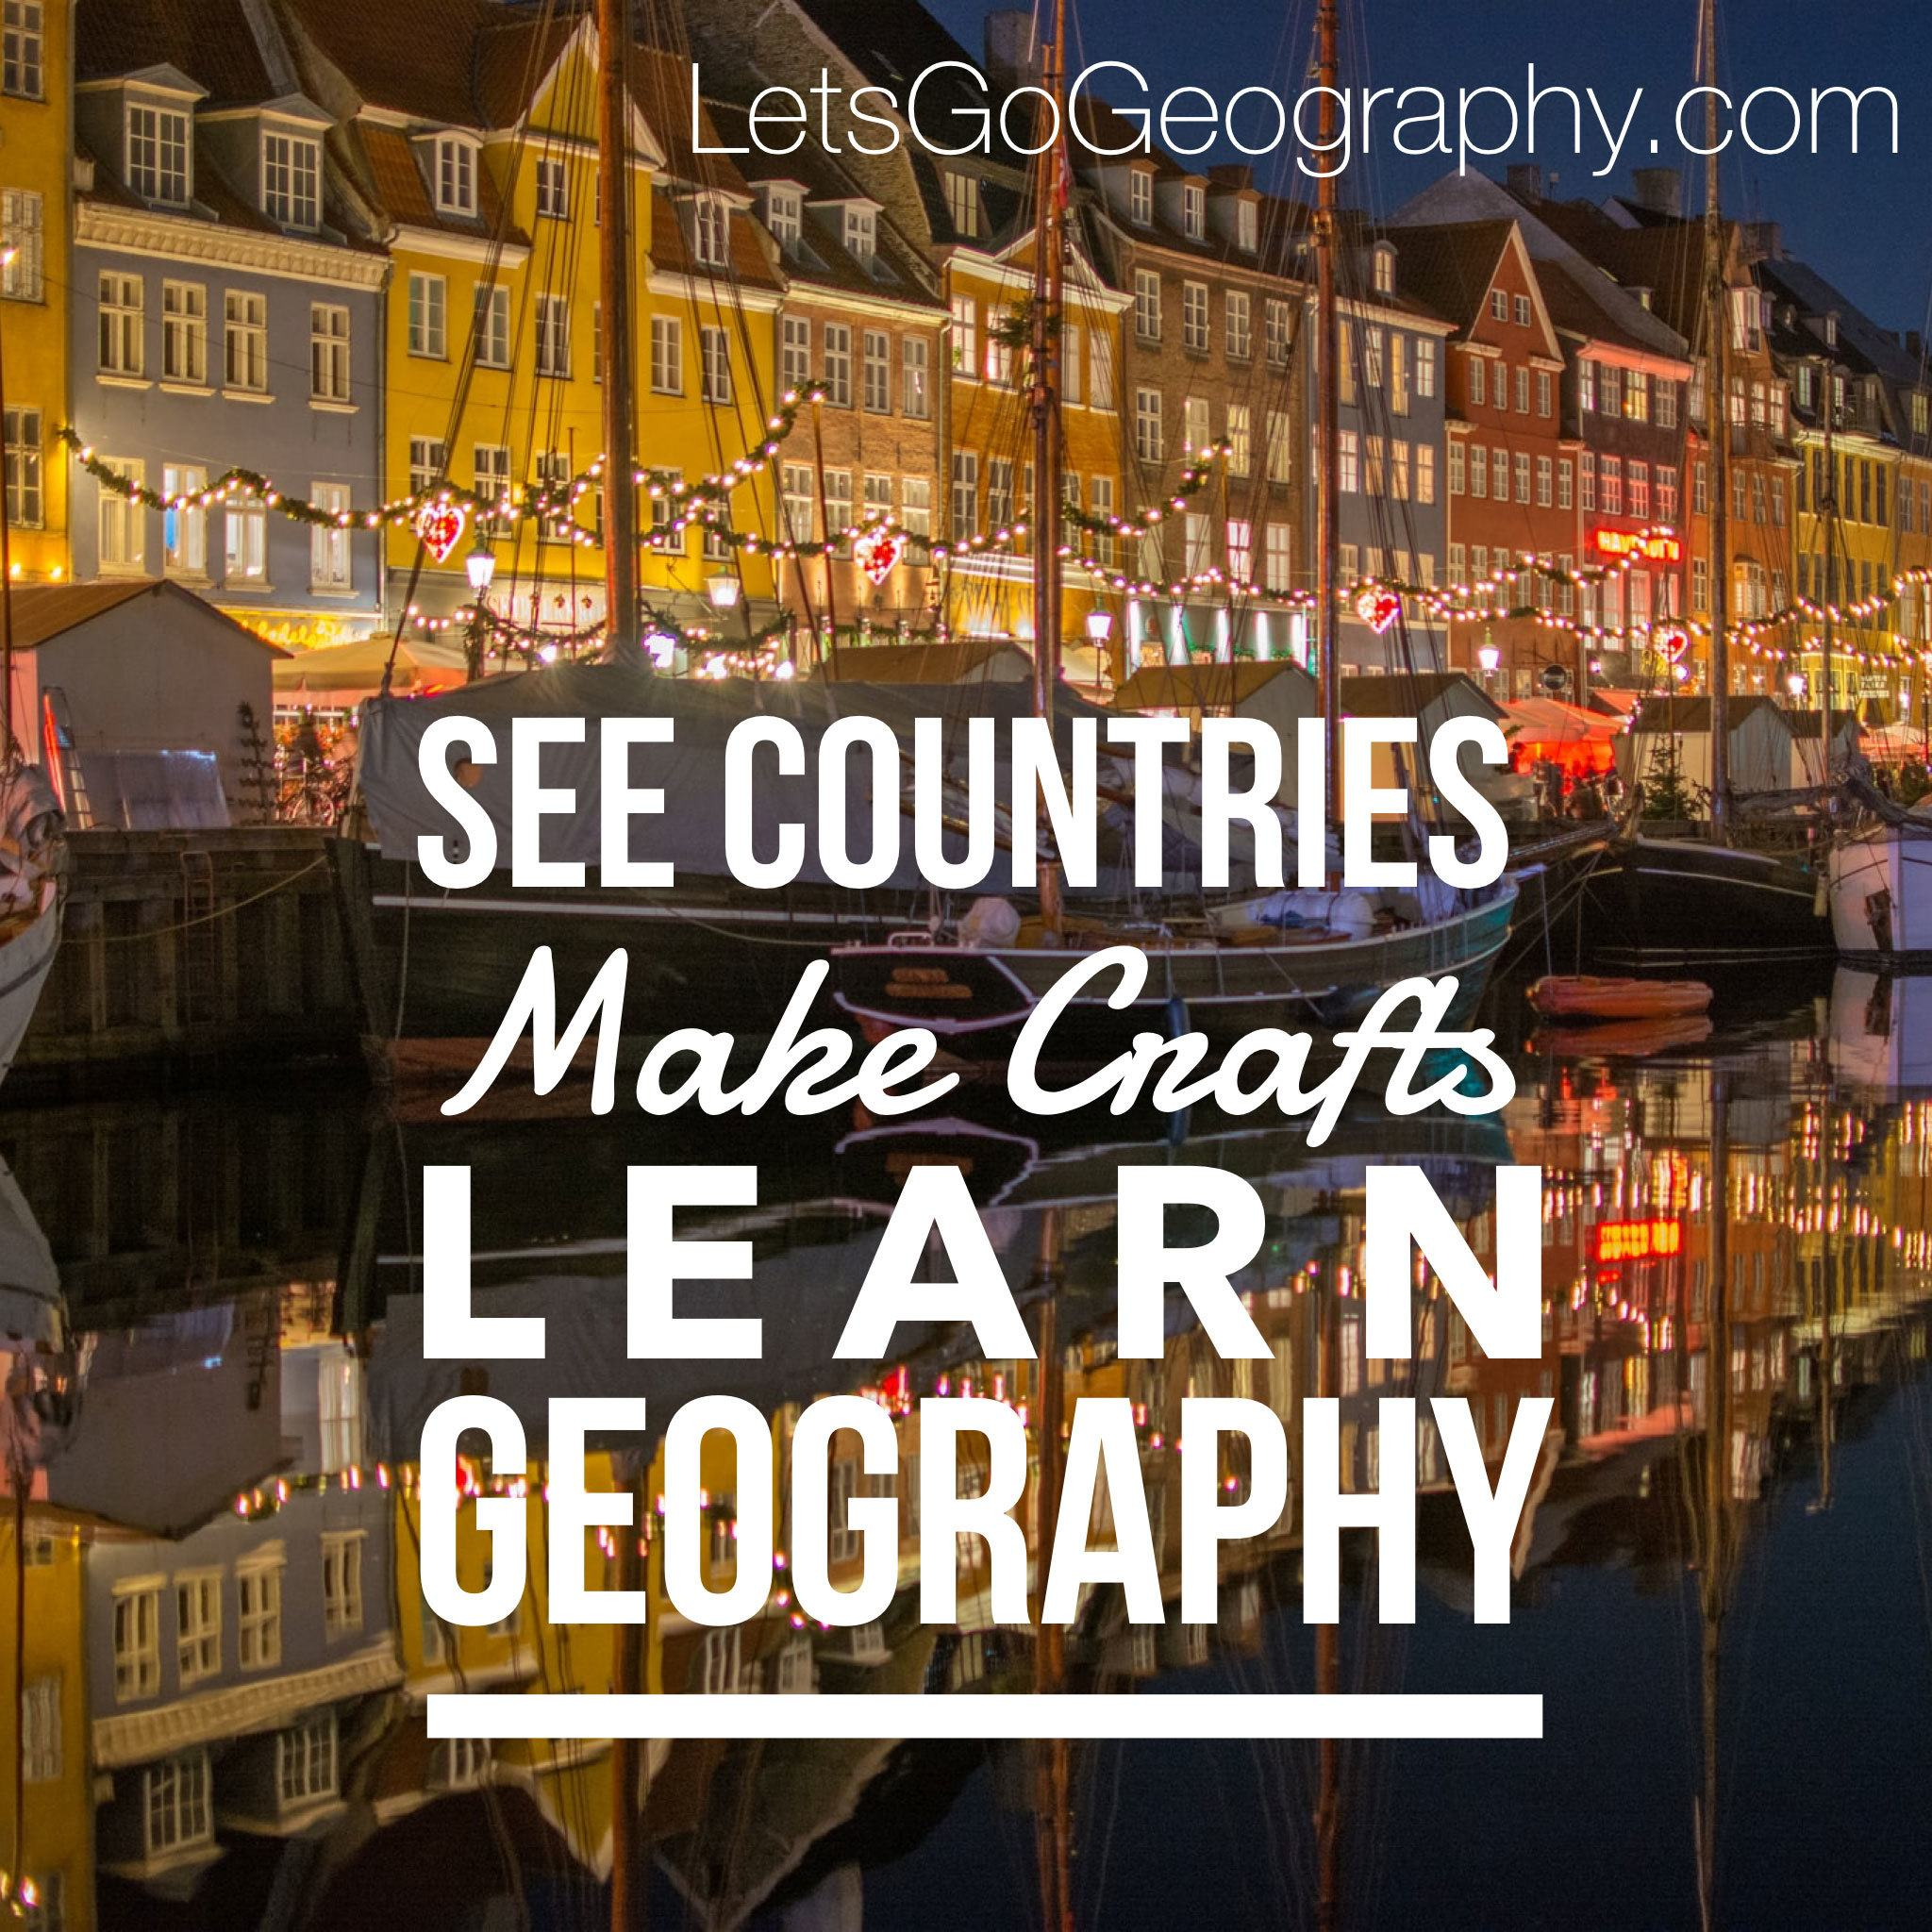 Let's Go Geography knows how to make elementary geography fun! Find out the secrets and get ready to toss the workbook pages. Kids love geography with these hands-on activities and ideas! Share with friends! #homeschoolgeographyelementary #homeschoolgeographychildren #homeschoolgeography #letsgogeography #geographyforkids #firstgradegeographycurriculum #1stgradegeographycurriculum #elementarygeographycurriculum